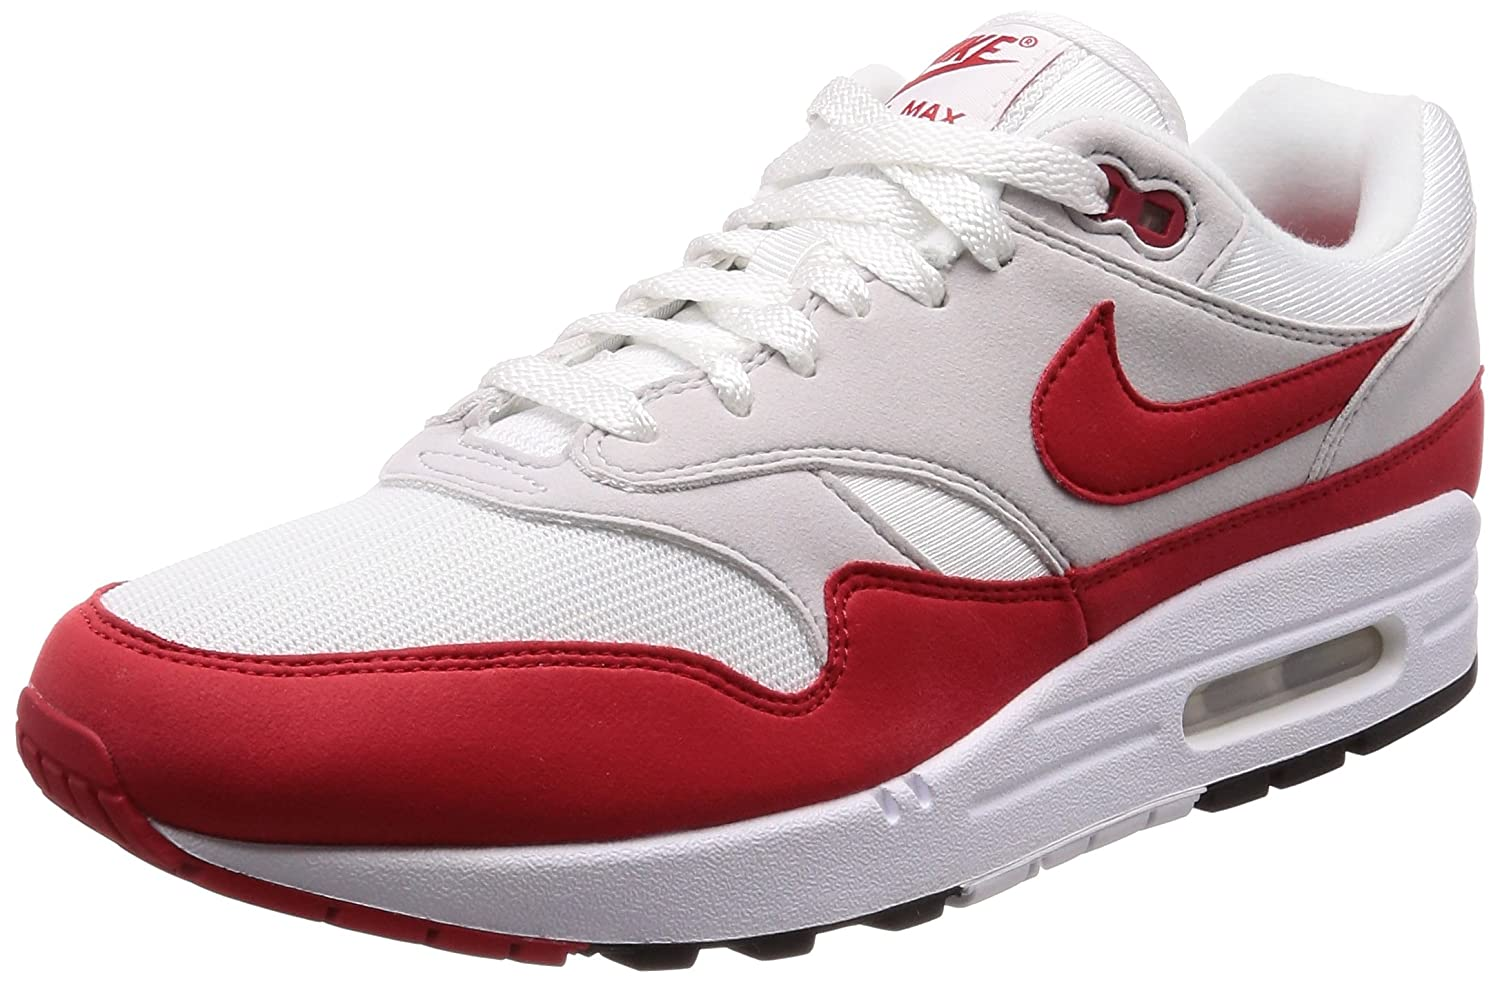 detailed look ff366 bfc0a NIKE AIR MAX 1 ANNIVERSARY - 908375-103: Amazon.ca: Shoes ...